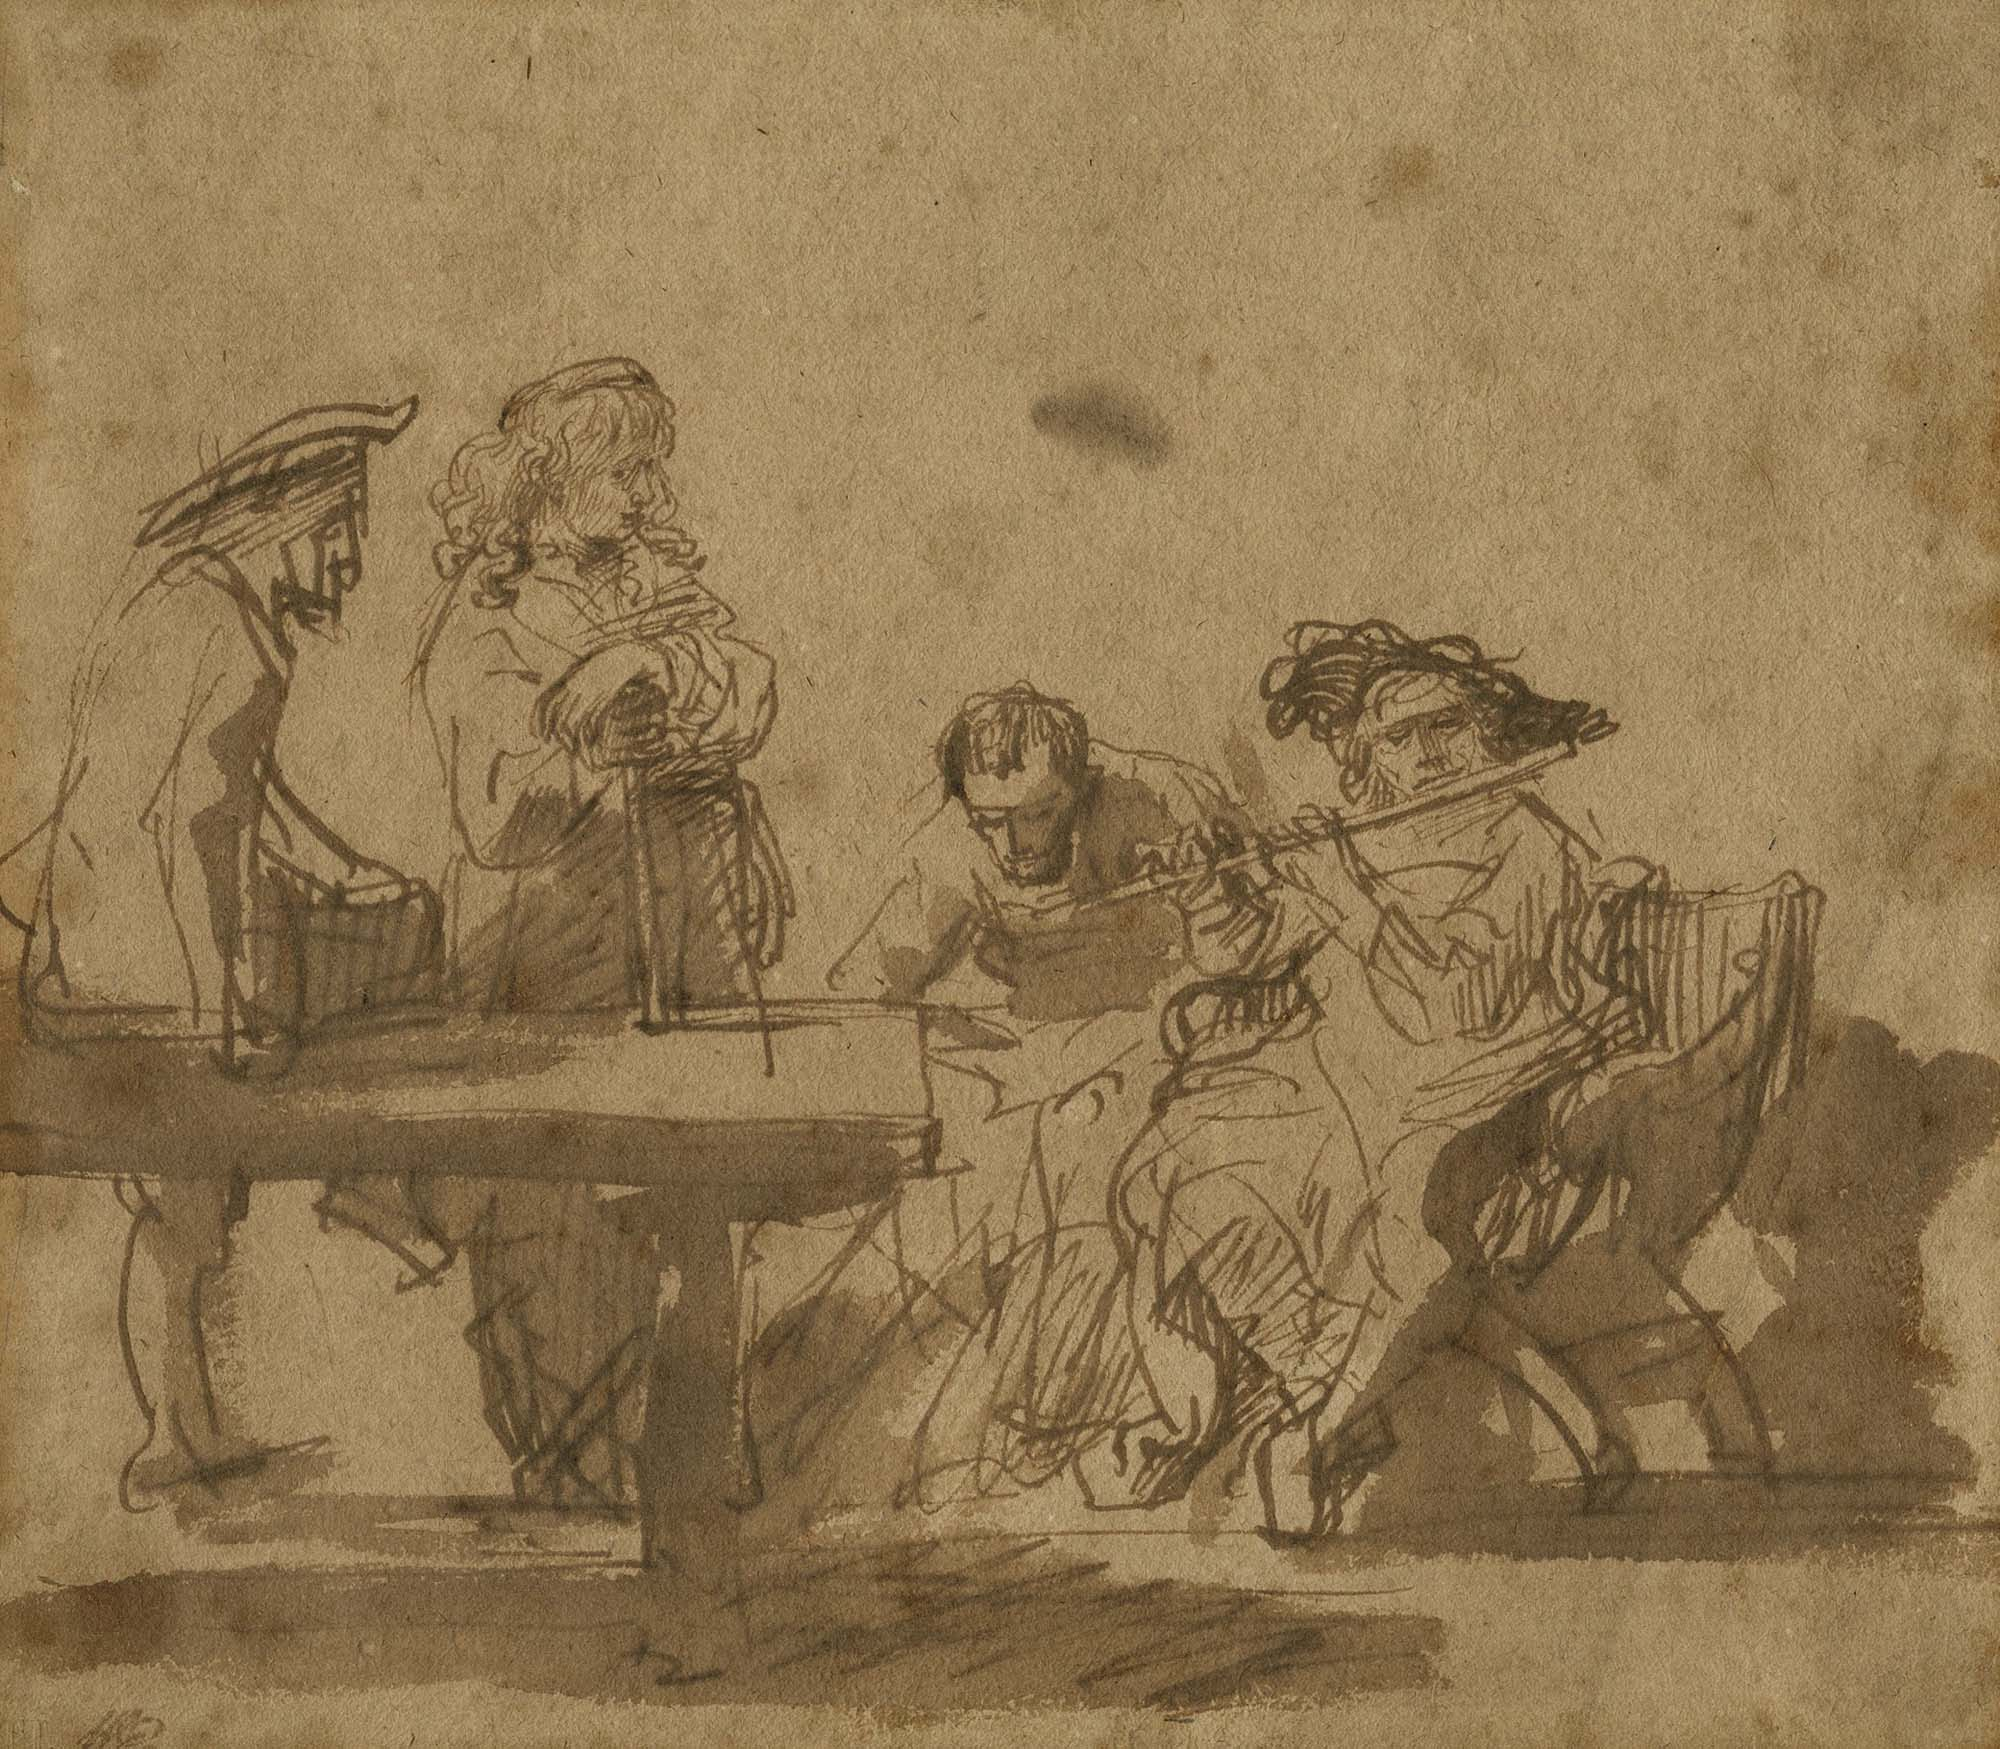 an etching by Rembrandt of a person playing a flute surrounded by other musicians leaning on a table